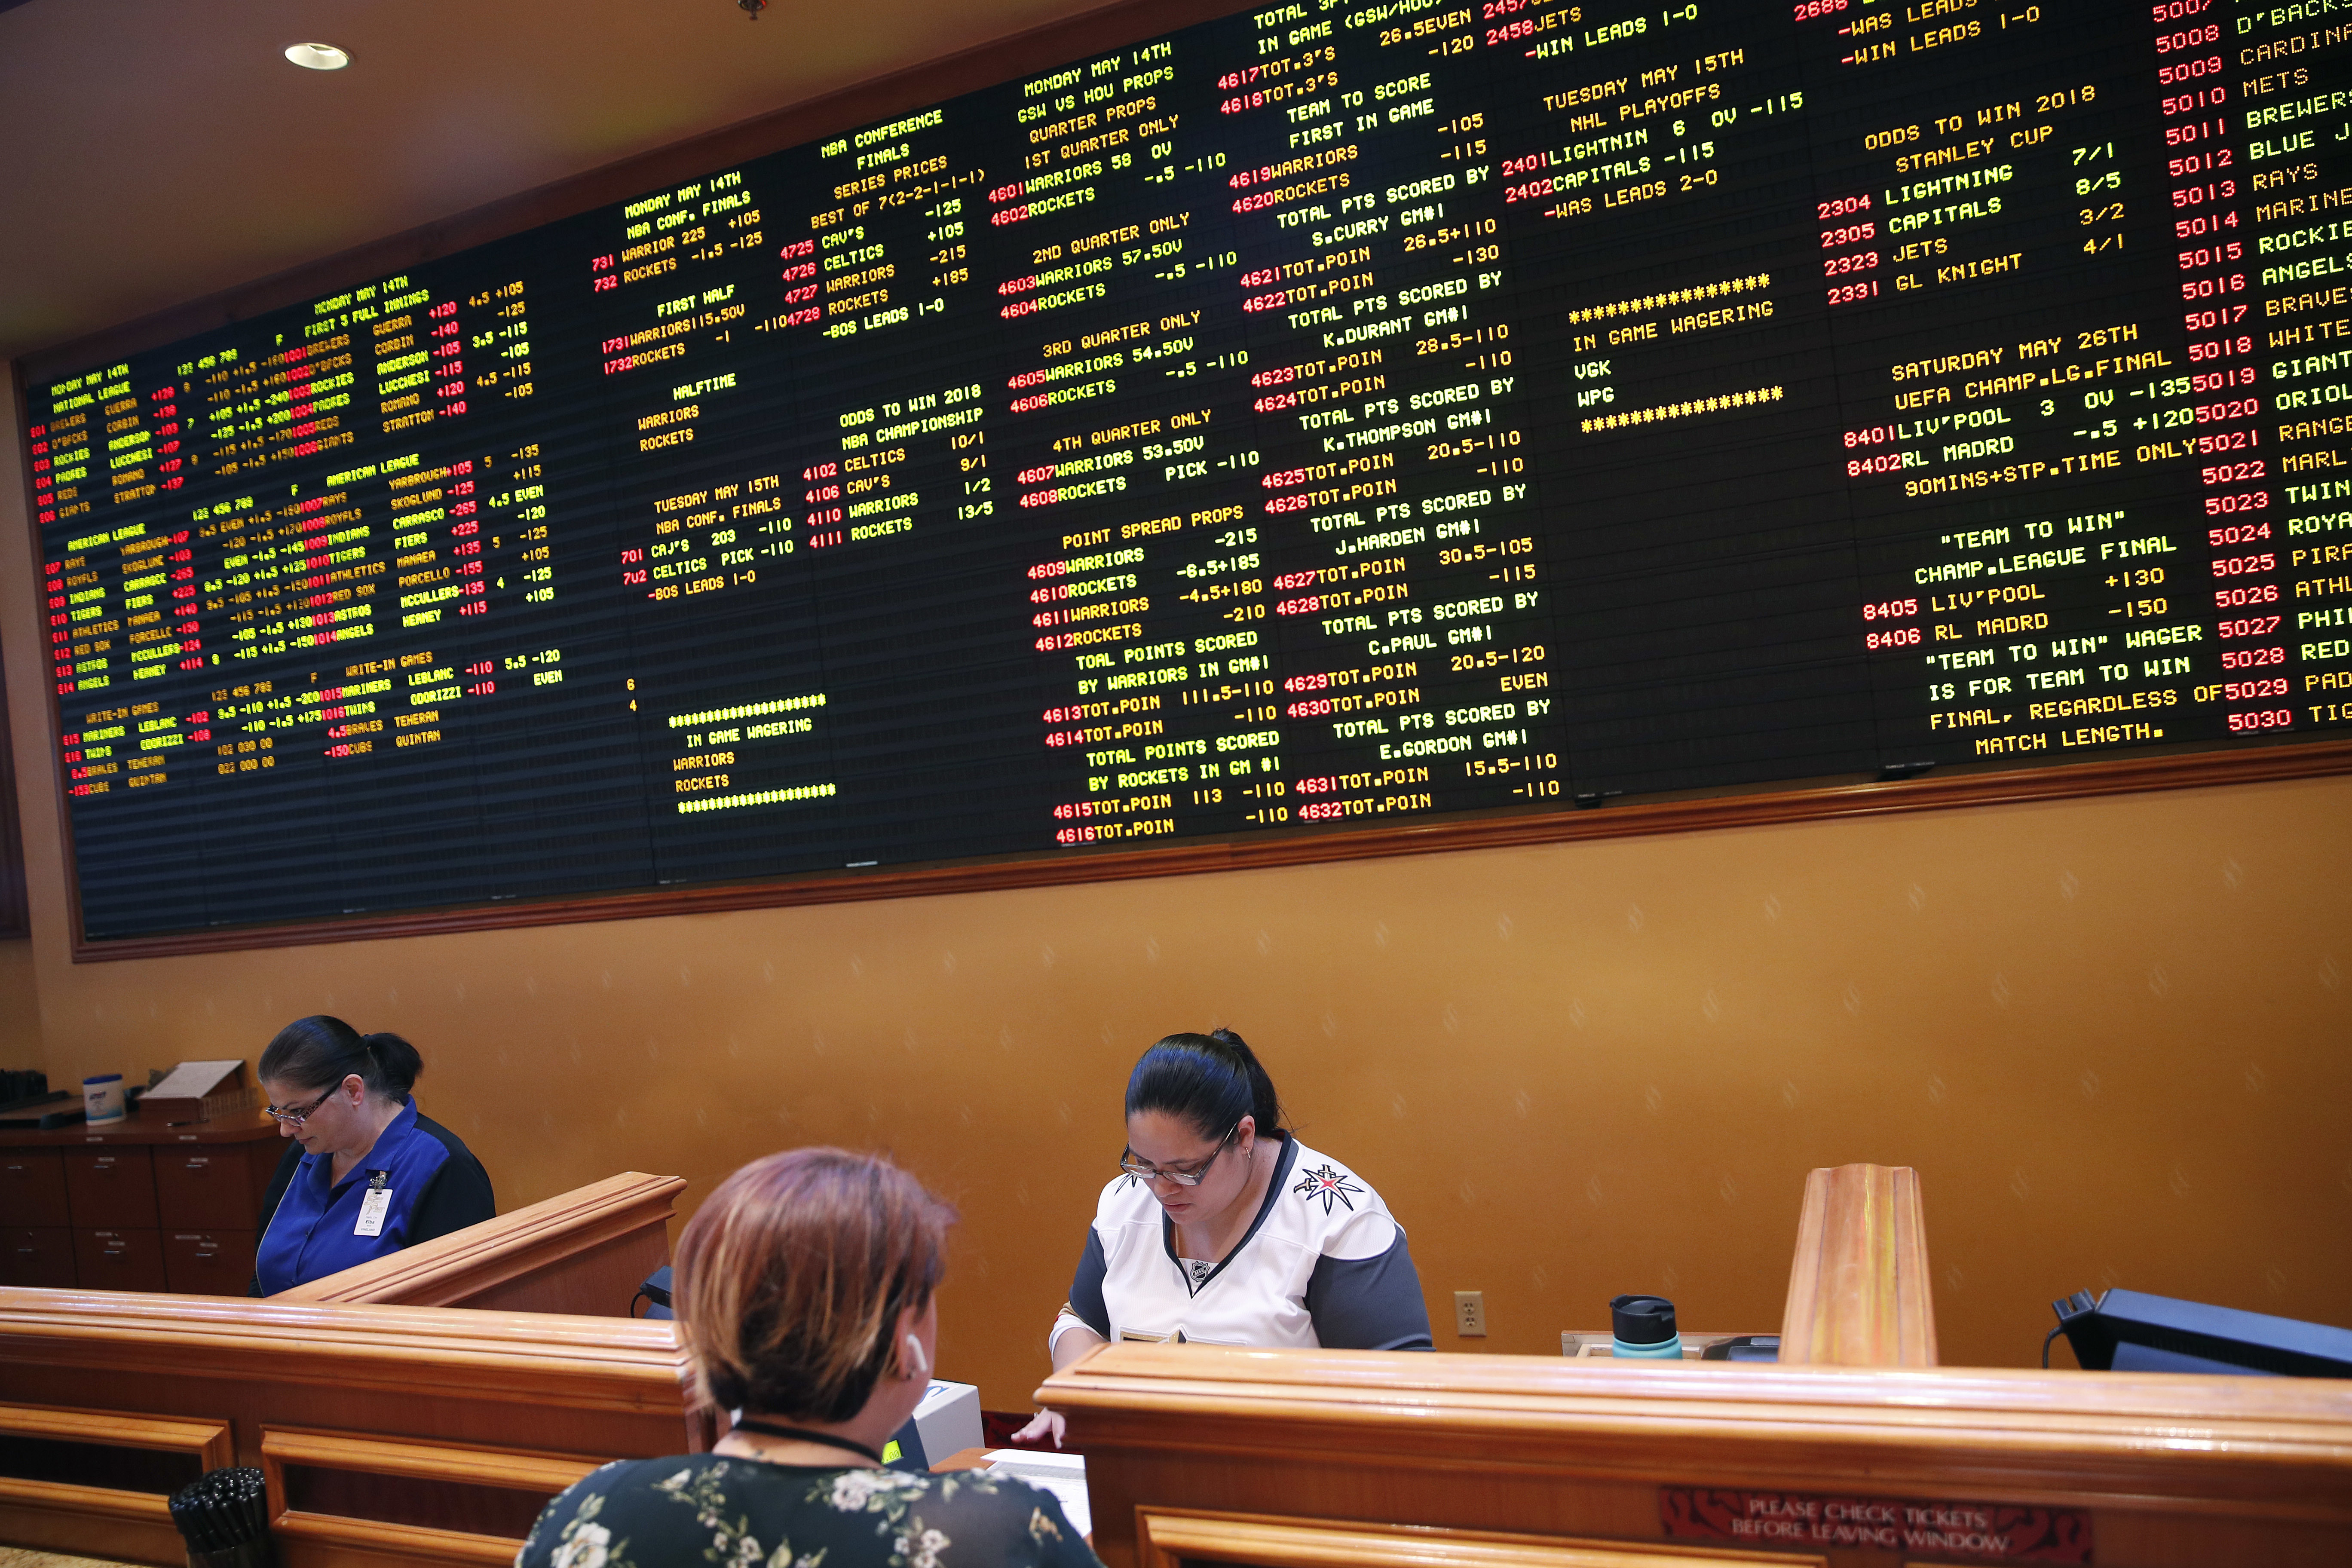 Online gambling, sports wagering closer to fruition in Connecticut